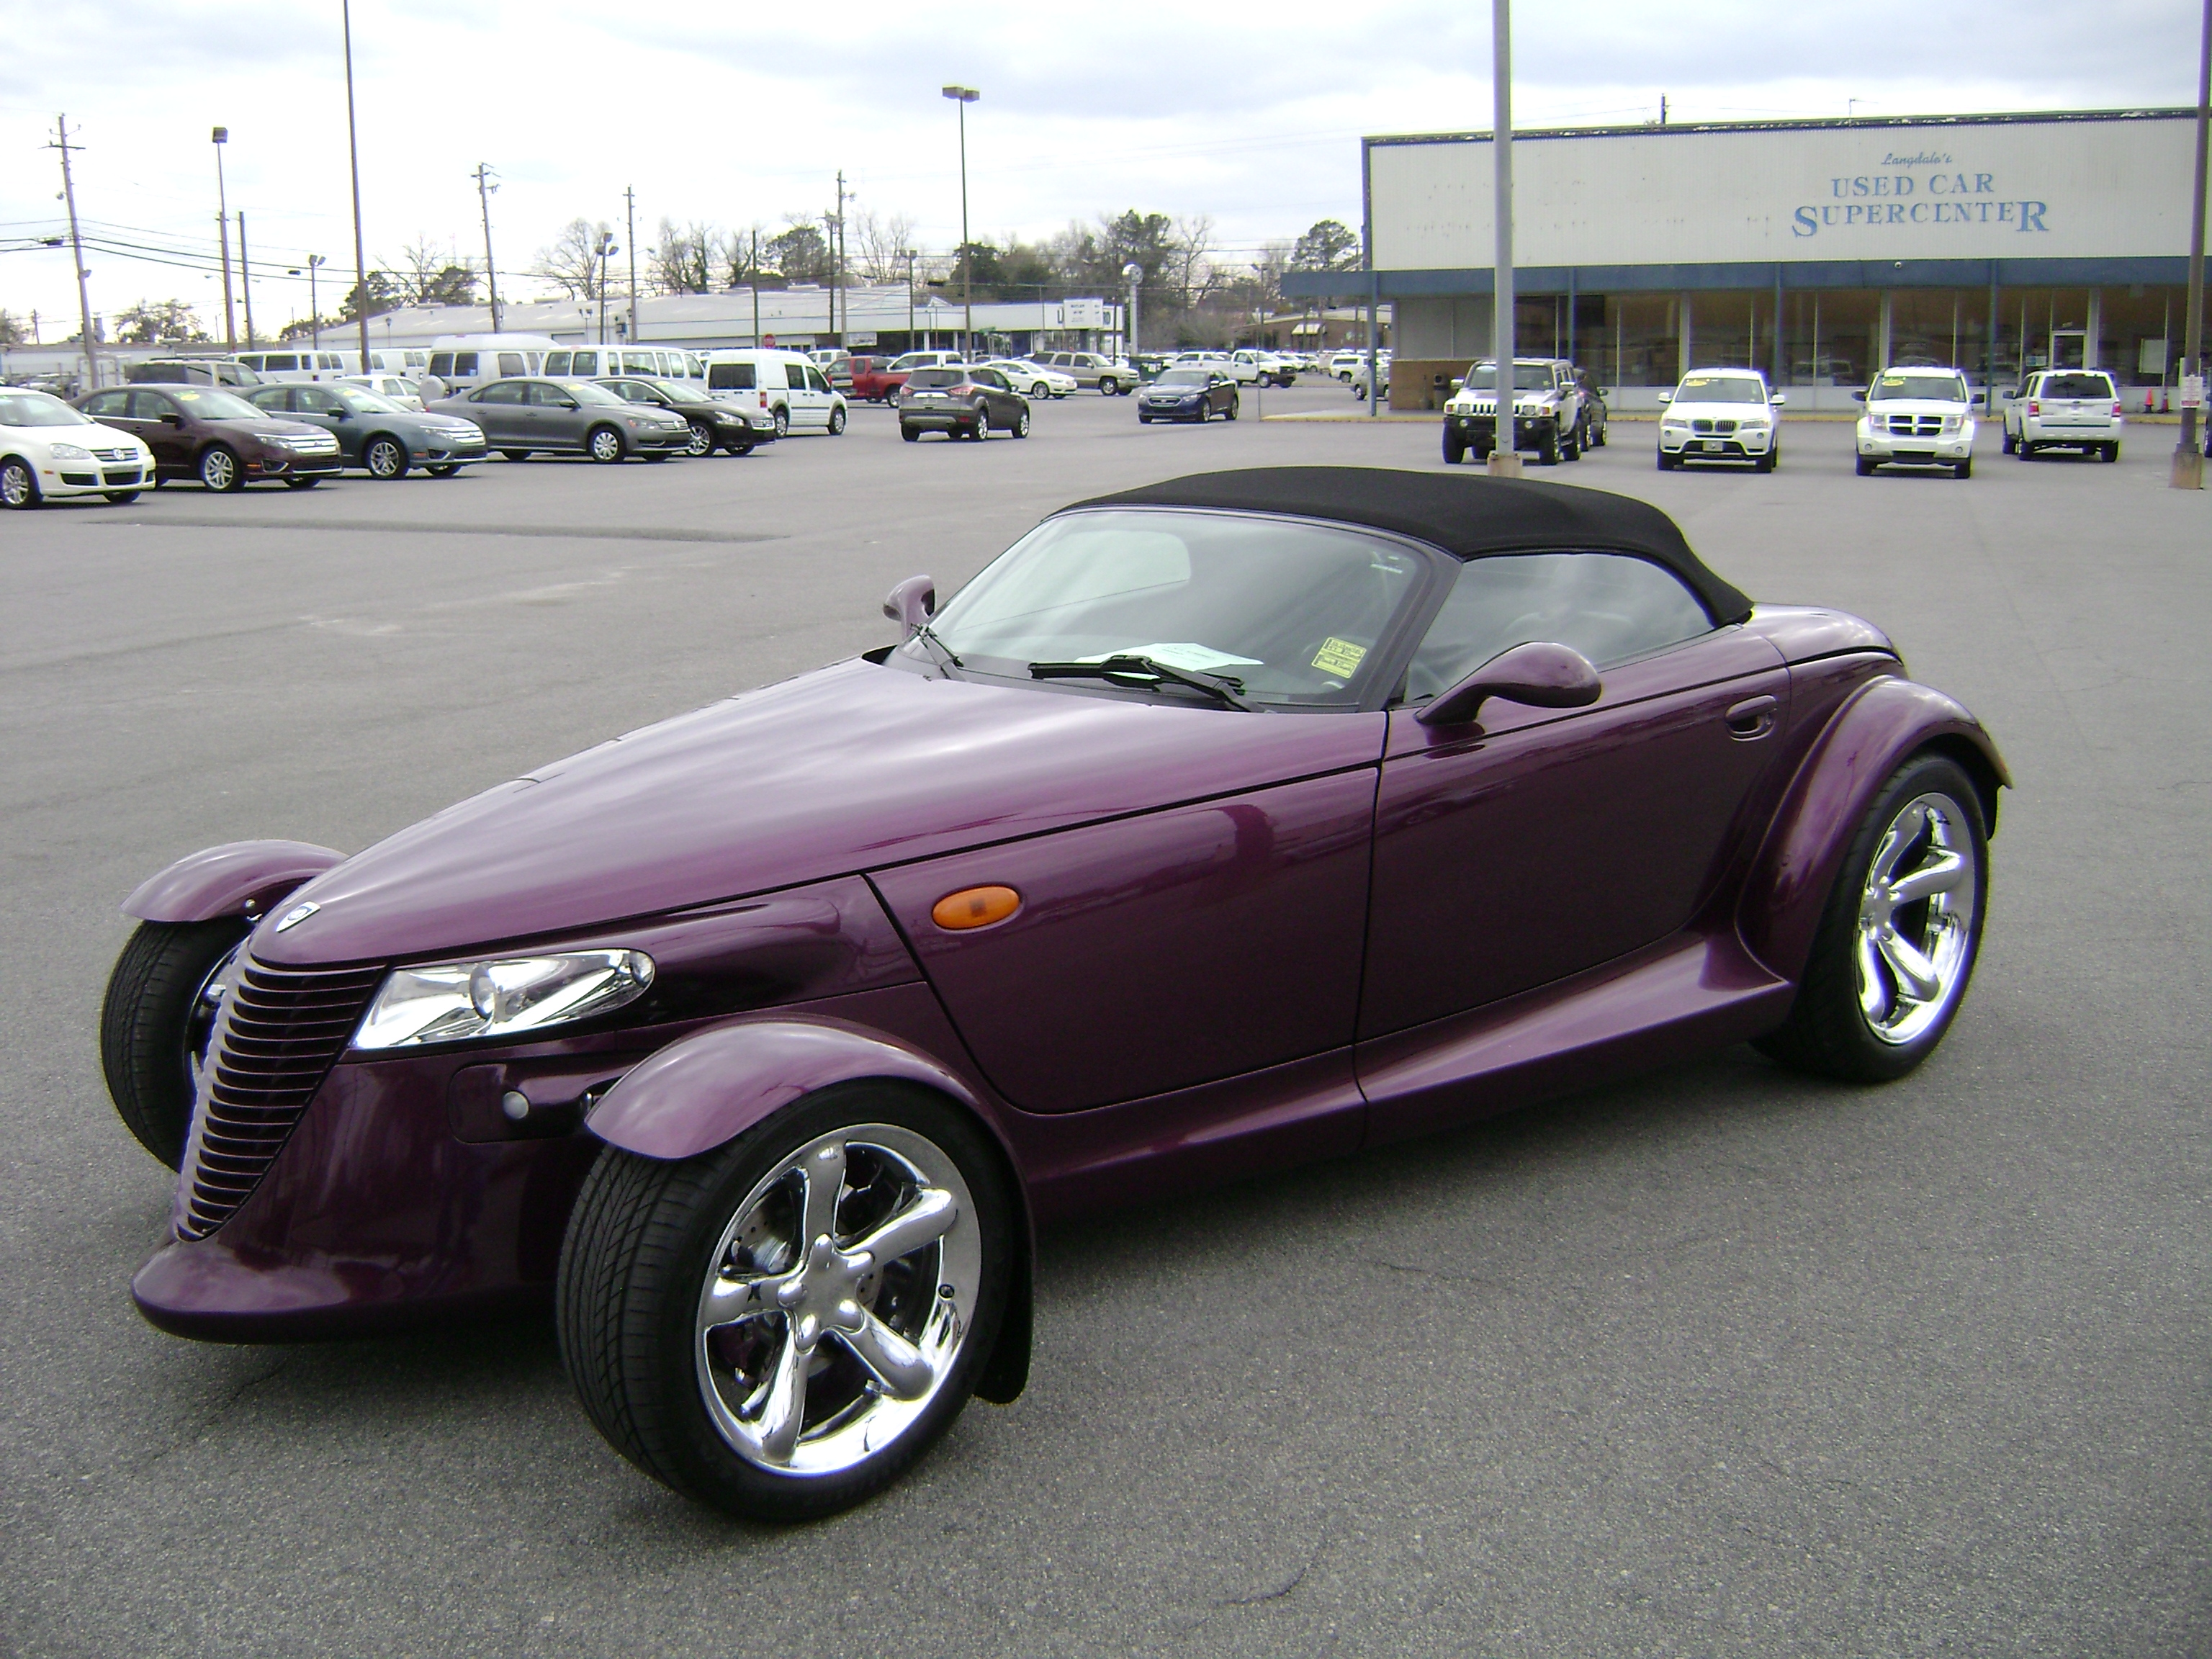 Chrysler Prowler With Matching Trailer 22 000 Miles Inca Gold 165246 besides 32 together with Awesome Airplane Rv Conversion moreover Noi Sirius 33 Milk Chocolate Bar together with File Purple Plymouth Prowler 97  NE corner. on plymouth prowler trailer